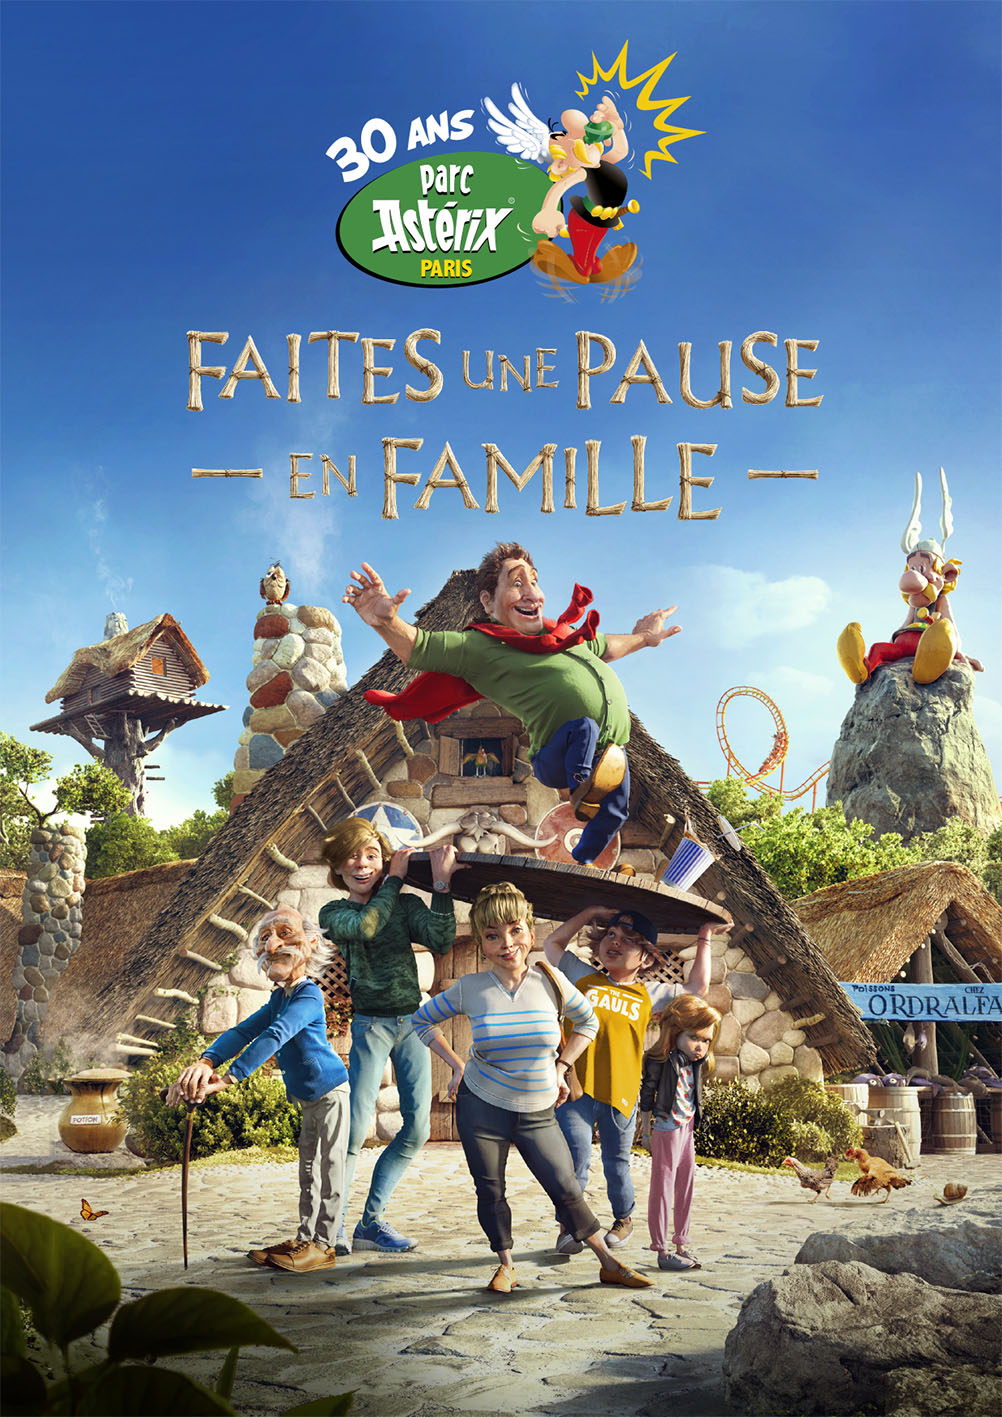 WEEK-END PARC ASTERIX